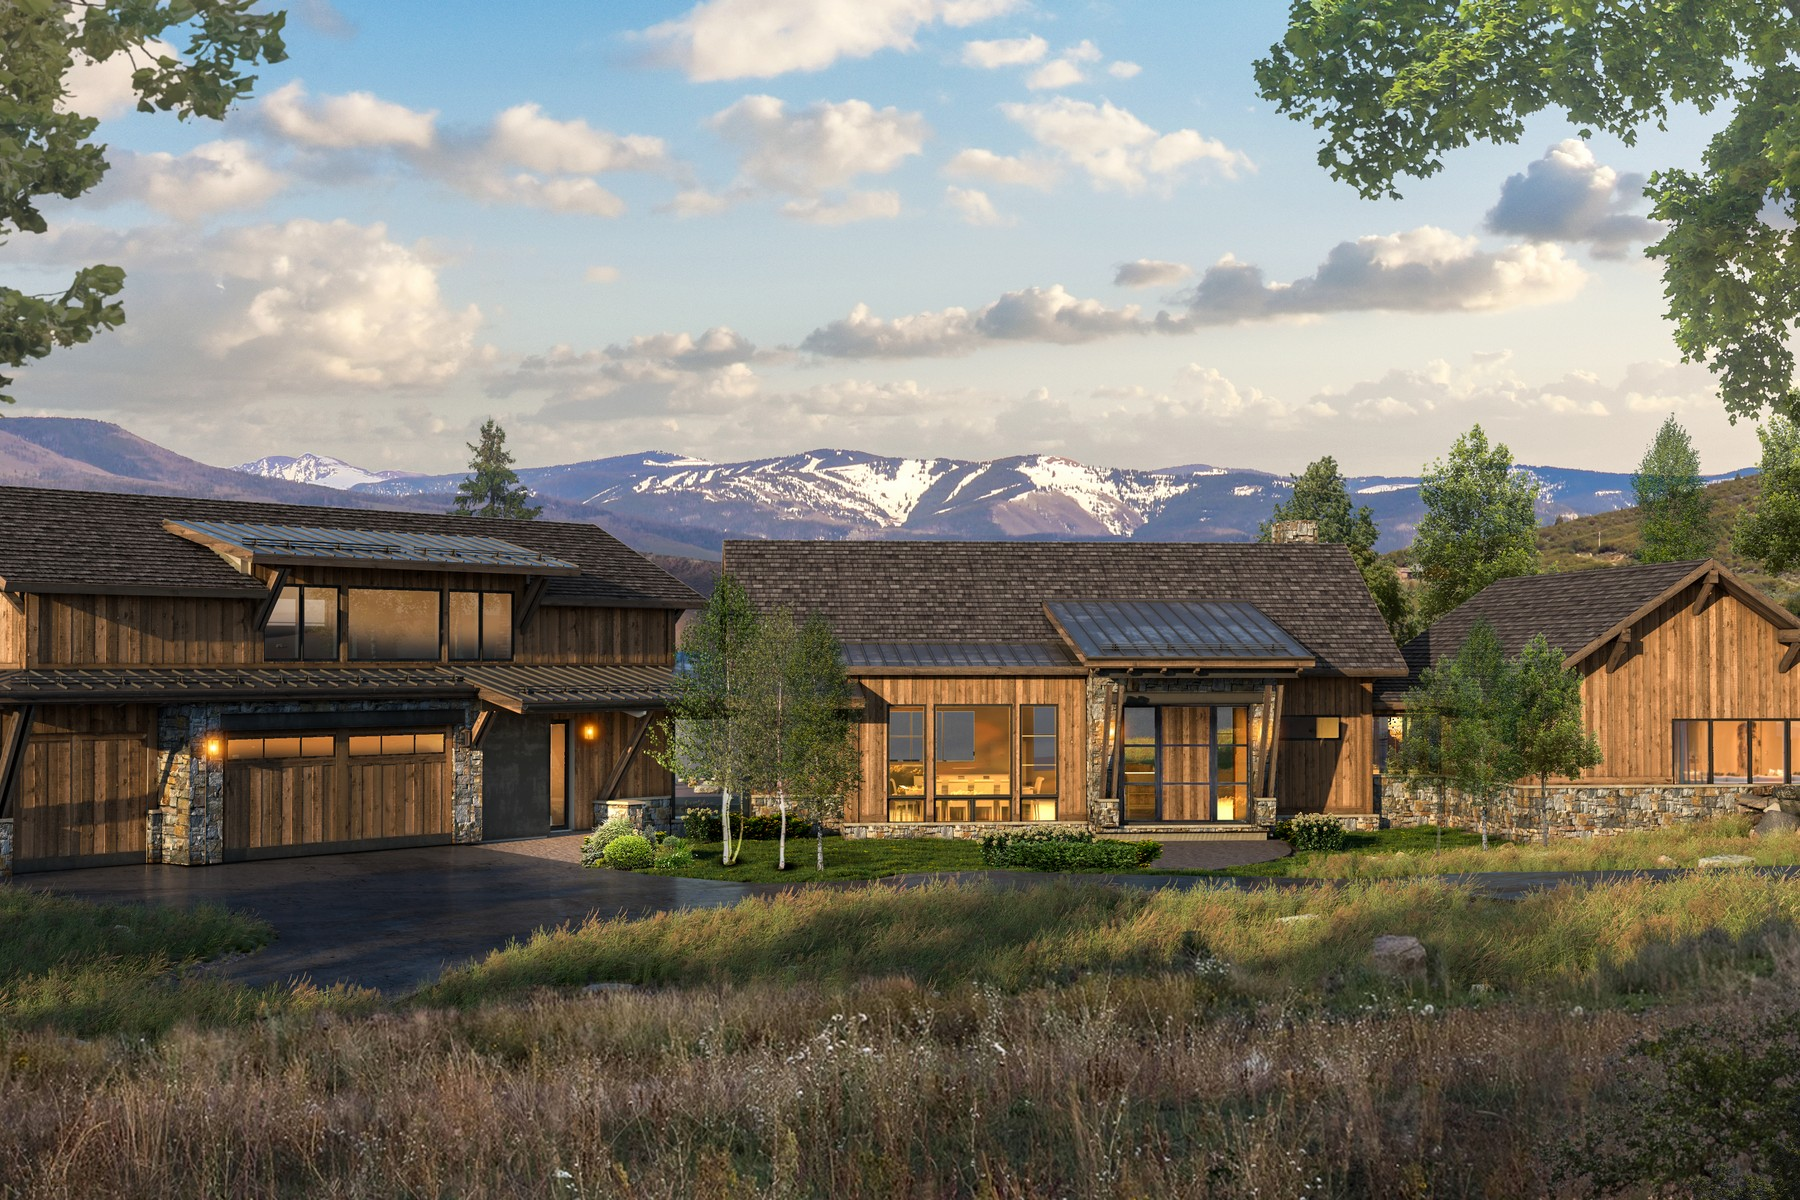 Single Family Homes for Active at Beautiful new mountain modern construction 786 Aspen Bluff Lane Wolcott, Colorado 81655 United States